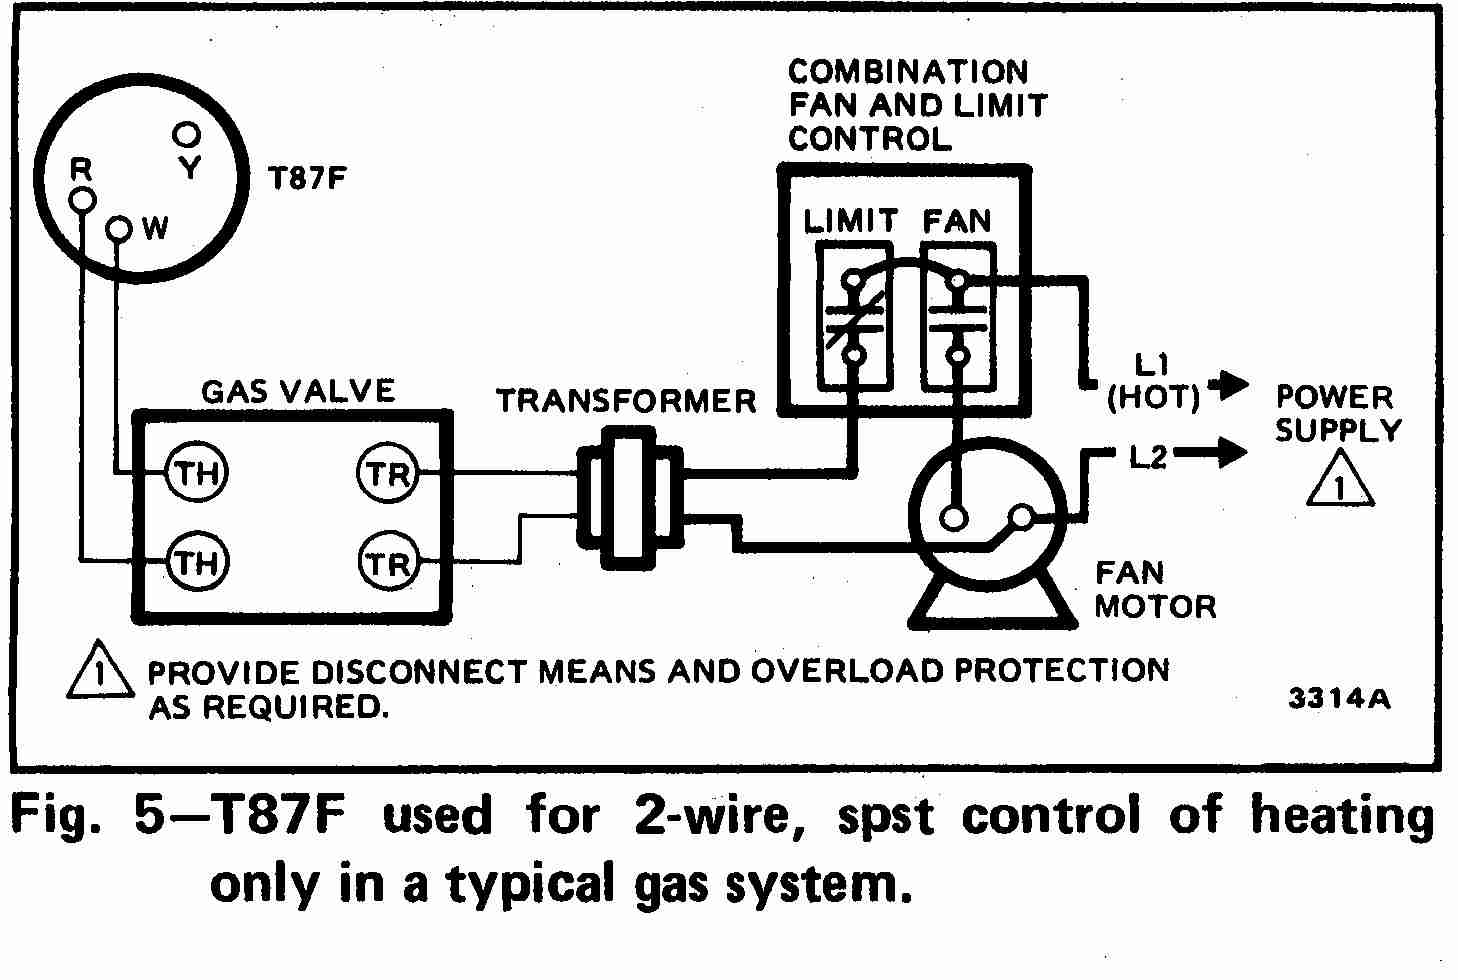 Guide To Wiring Connections For Room Thermostats Ac Colors Honeywell T87f Thermostat Diagram 2 Wire Spst Control Of Heating Only In